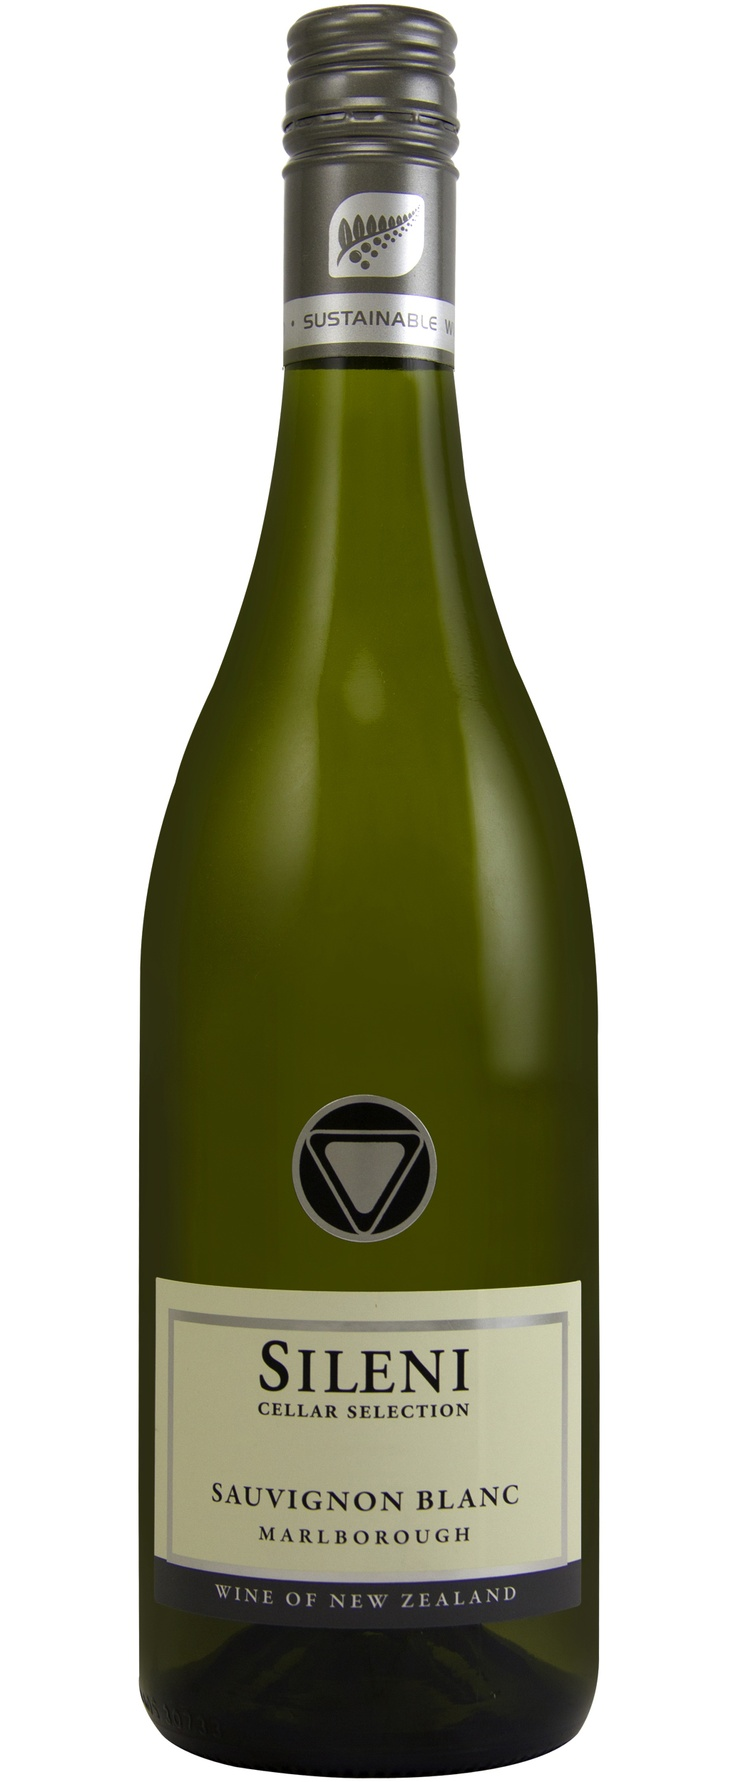 Sileni Estates Sauvignon Blanc  Ripe tropical gooseberry and passionfruit flavors with a zippy finish.